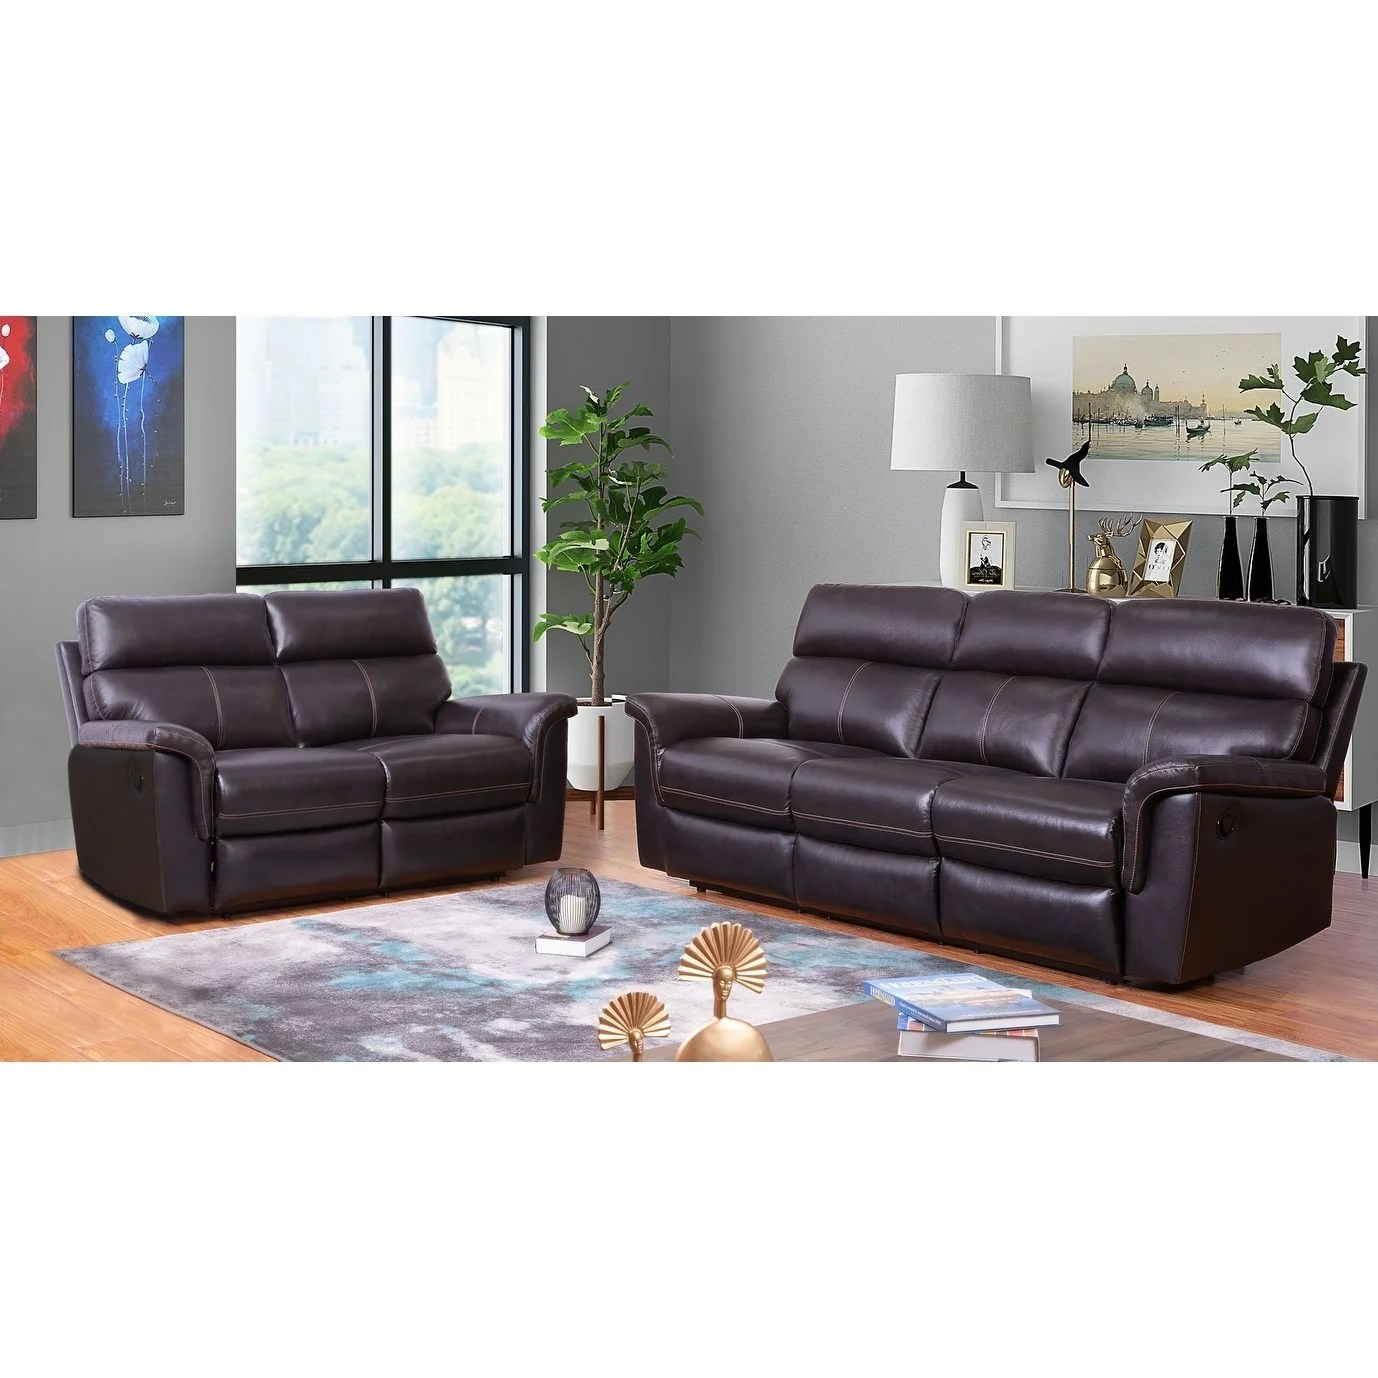 Abbyson Wellington Brown Top Grain Leather Reclining Sofa And Loveseat Set